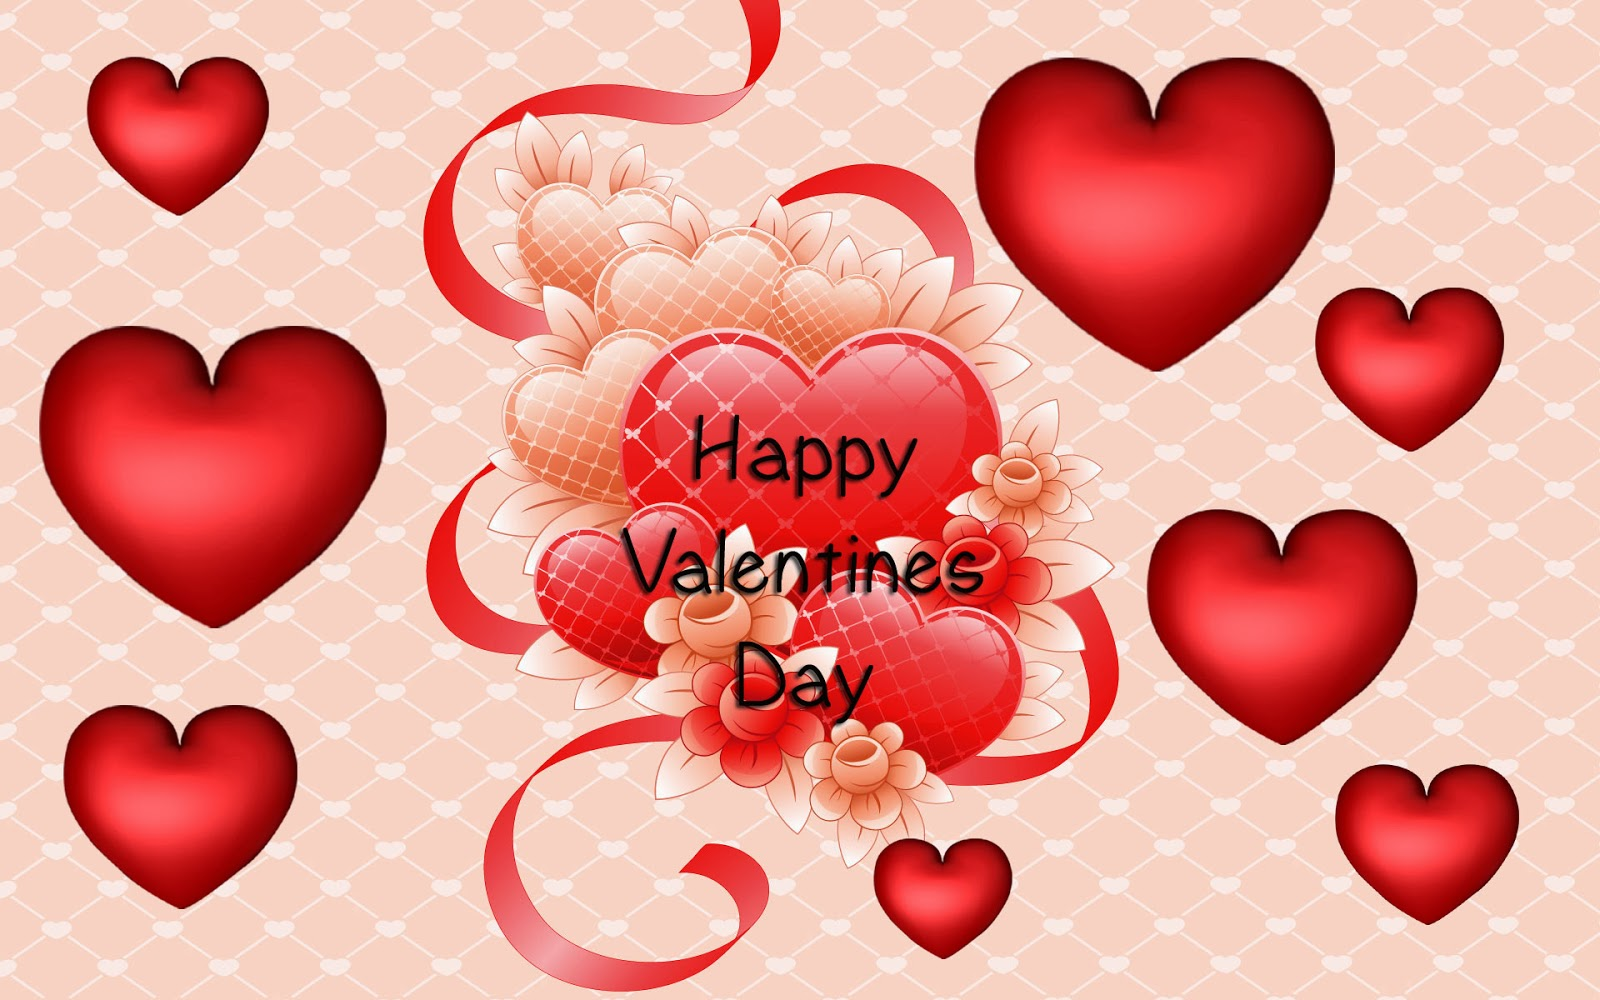 Happy_Valentine_Day_Wallpapers_23